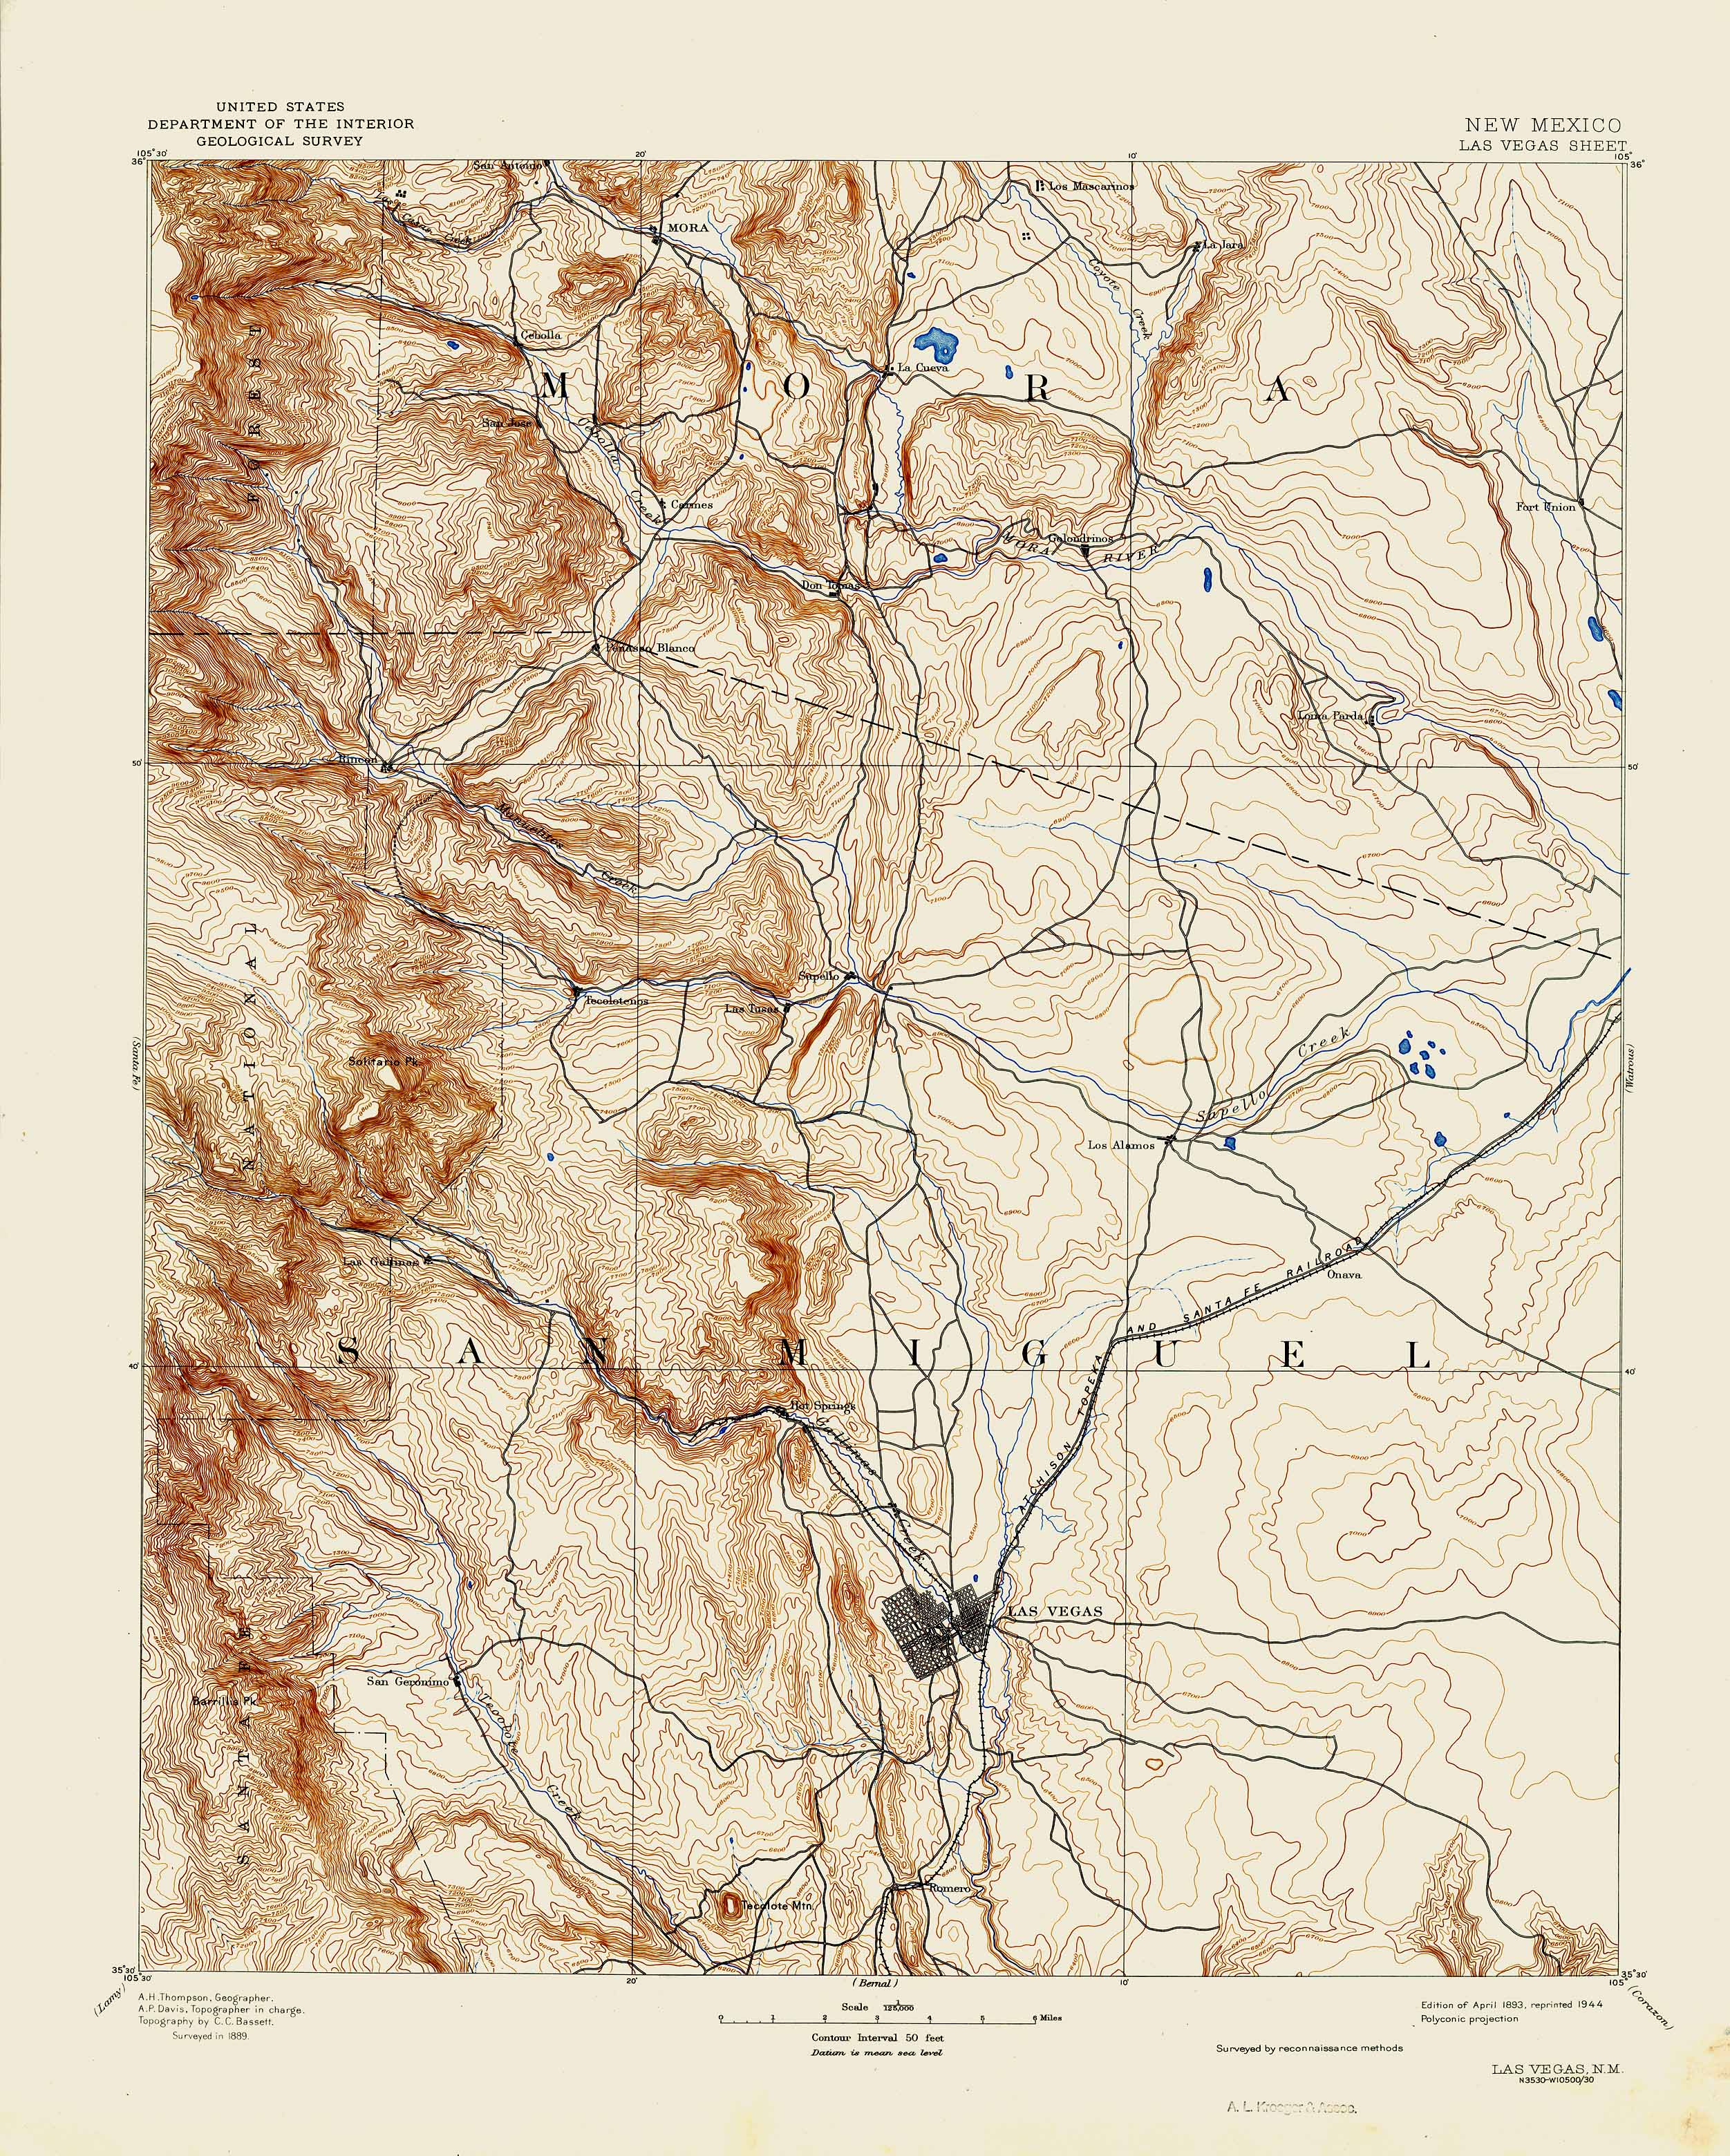 Collection C 007: USGS topographic map of Las Vegas, N.M., at the ...